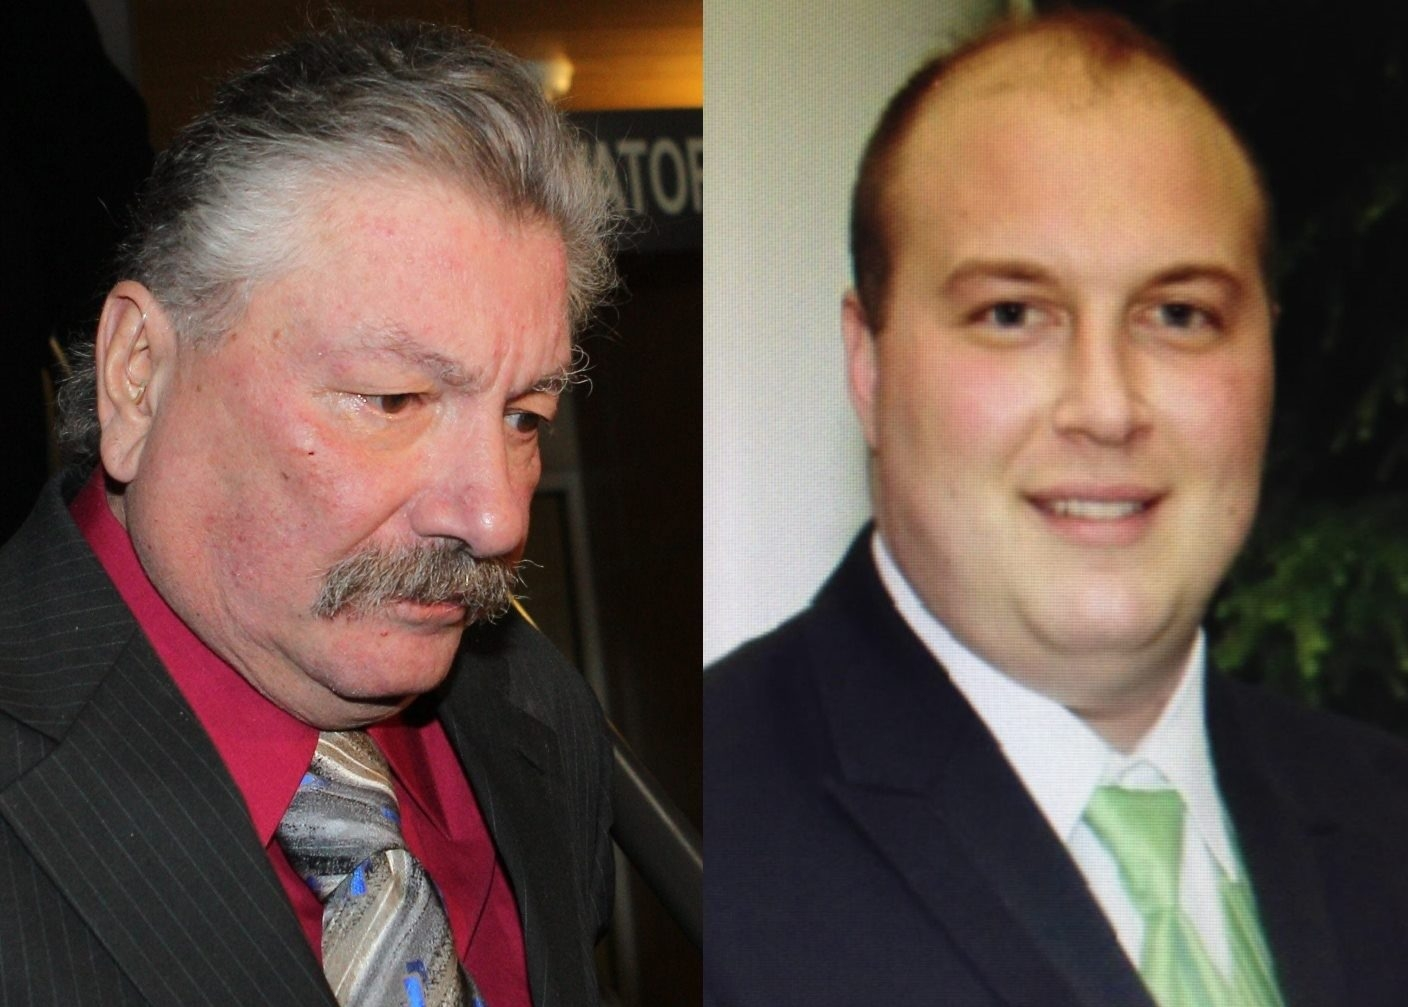 Robert J. Styn Jr., left, pleaded guilty Wednesday to two DWI charges and faces likely probation in crash that killed West Seneca Democratic Chairman Daniel S. McParlane in November.